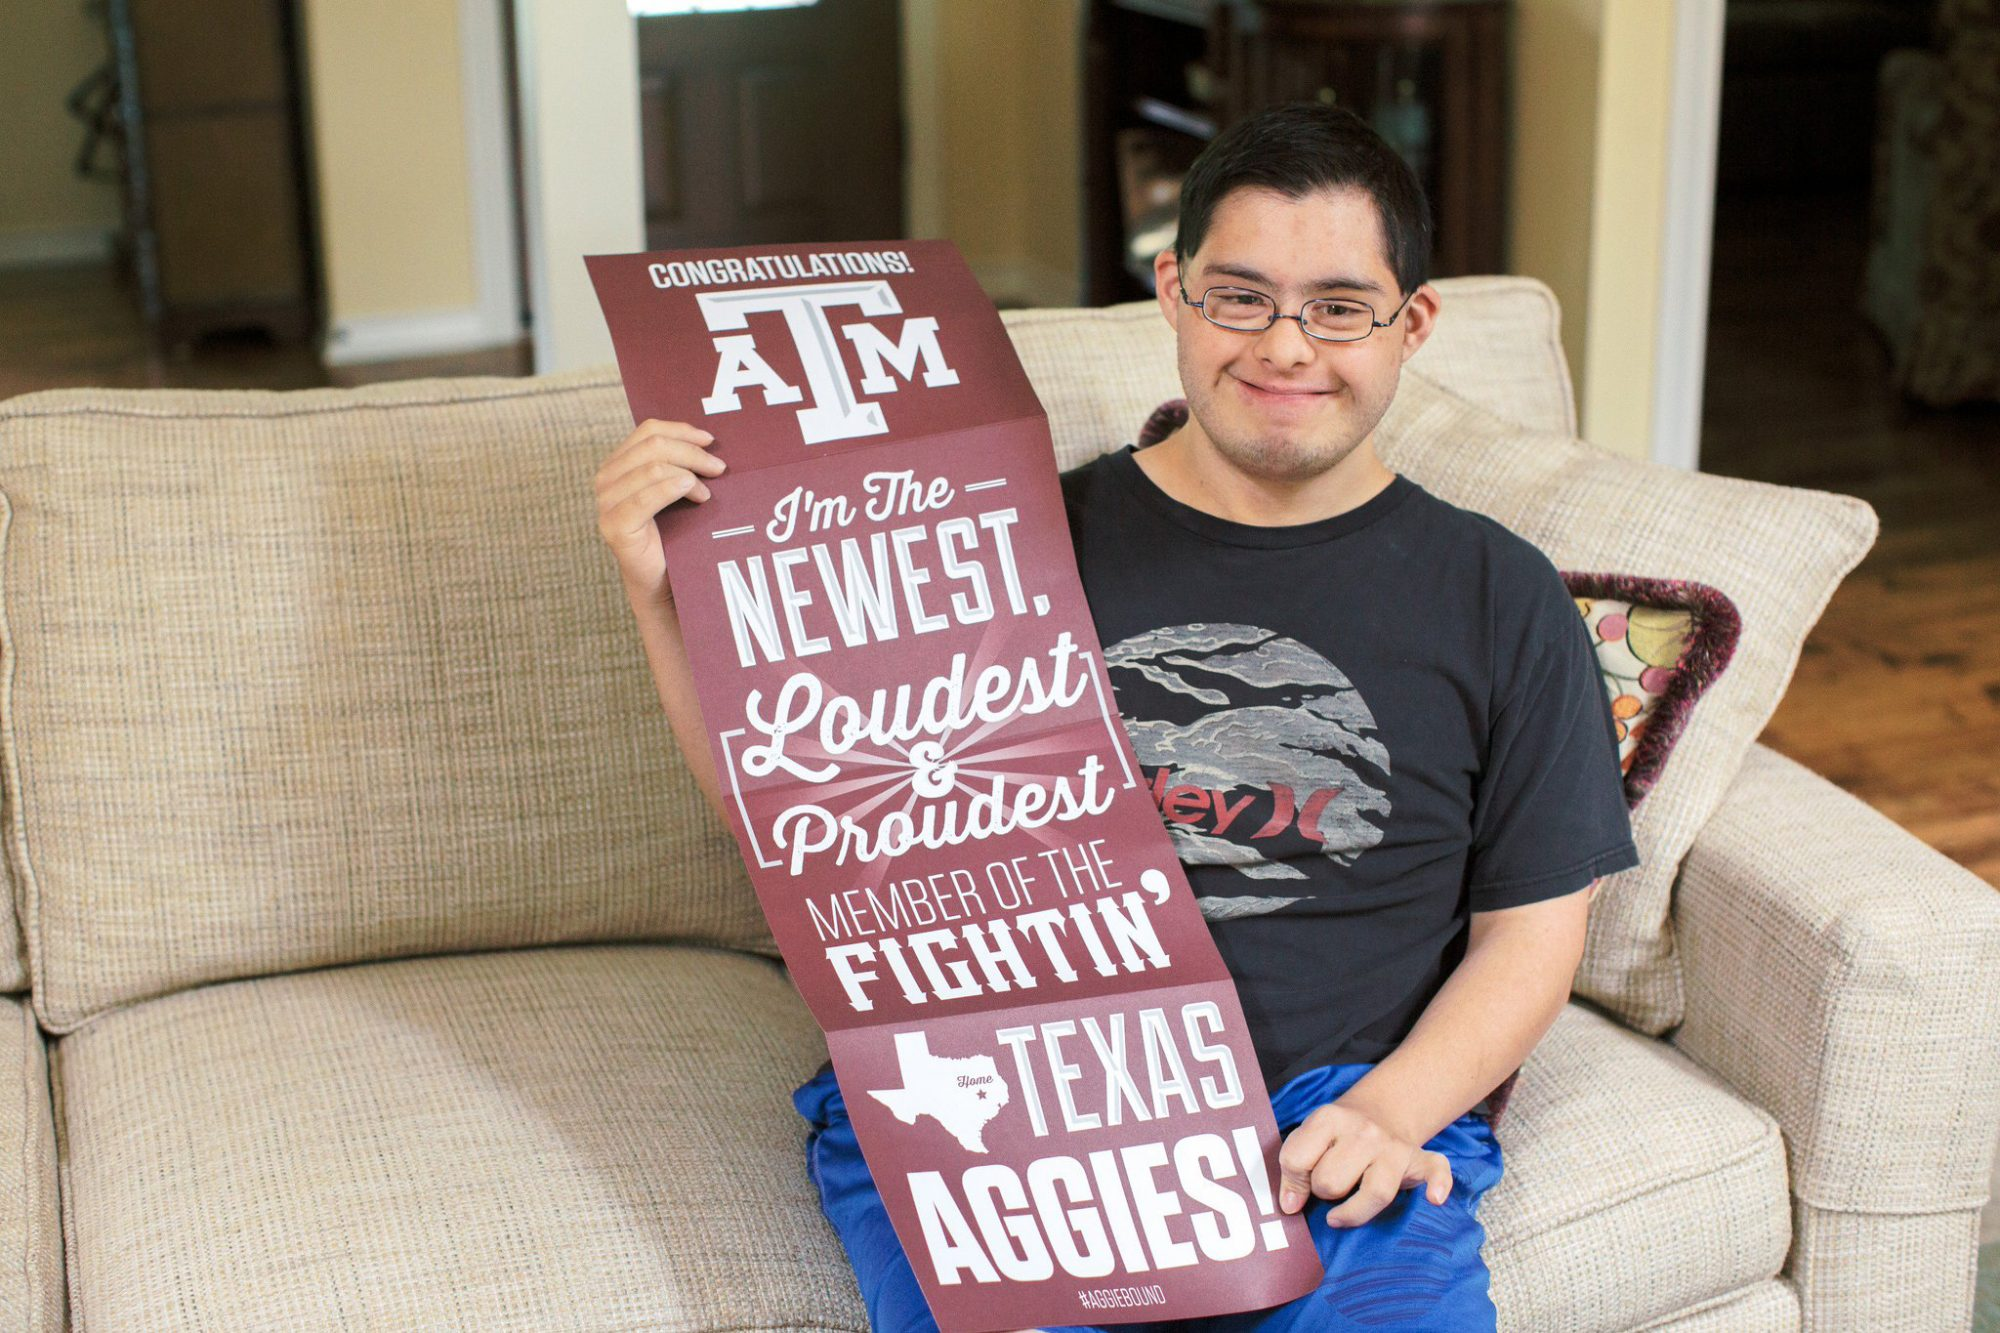 Texas A&M announced its new 4yr program for students with disabilities.